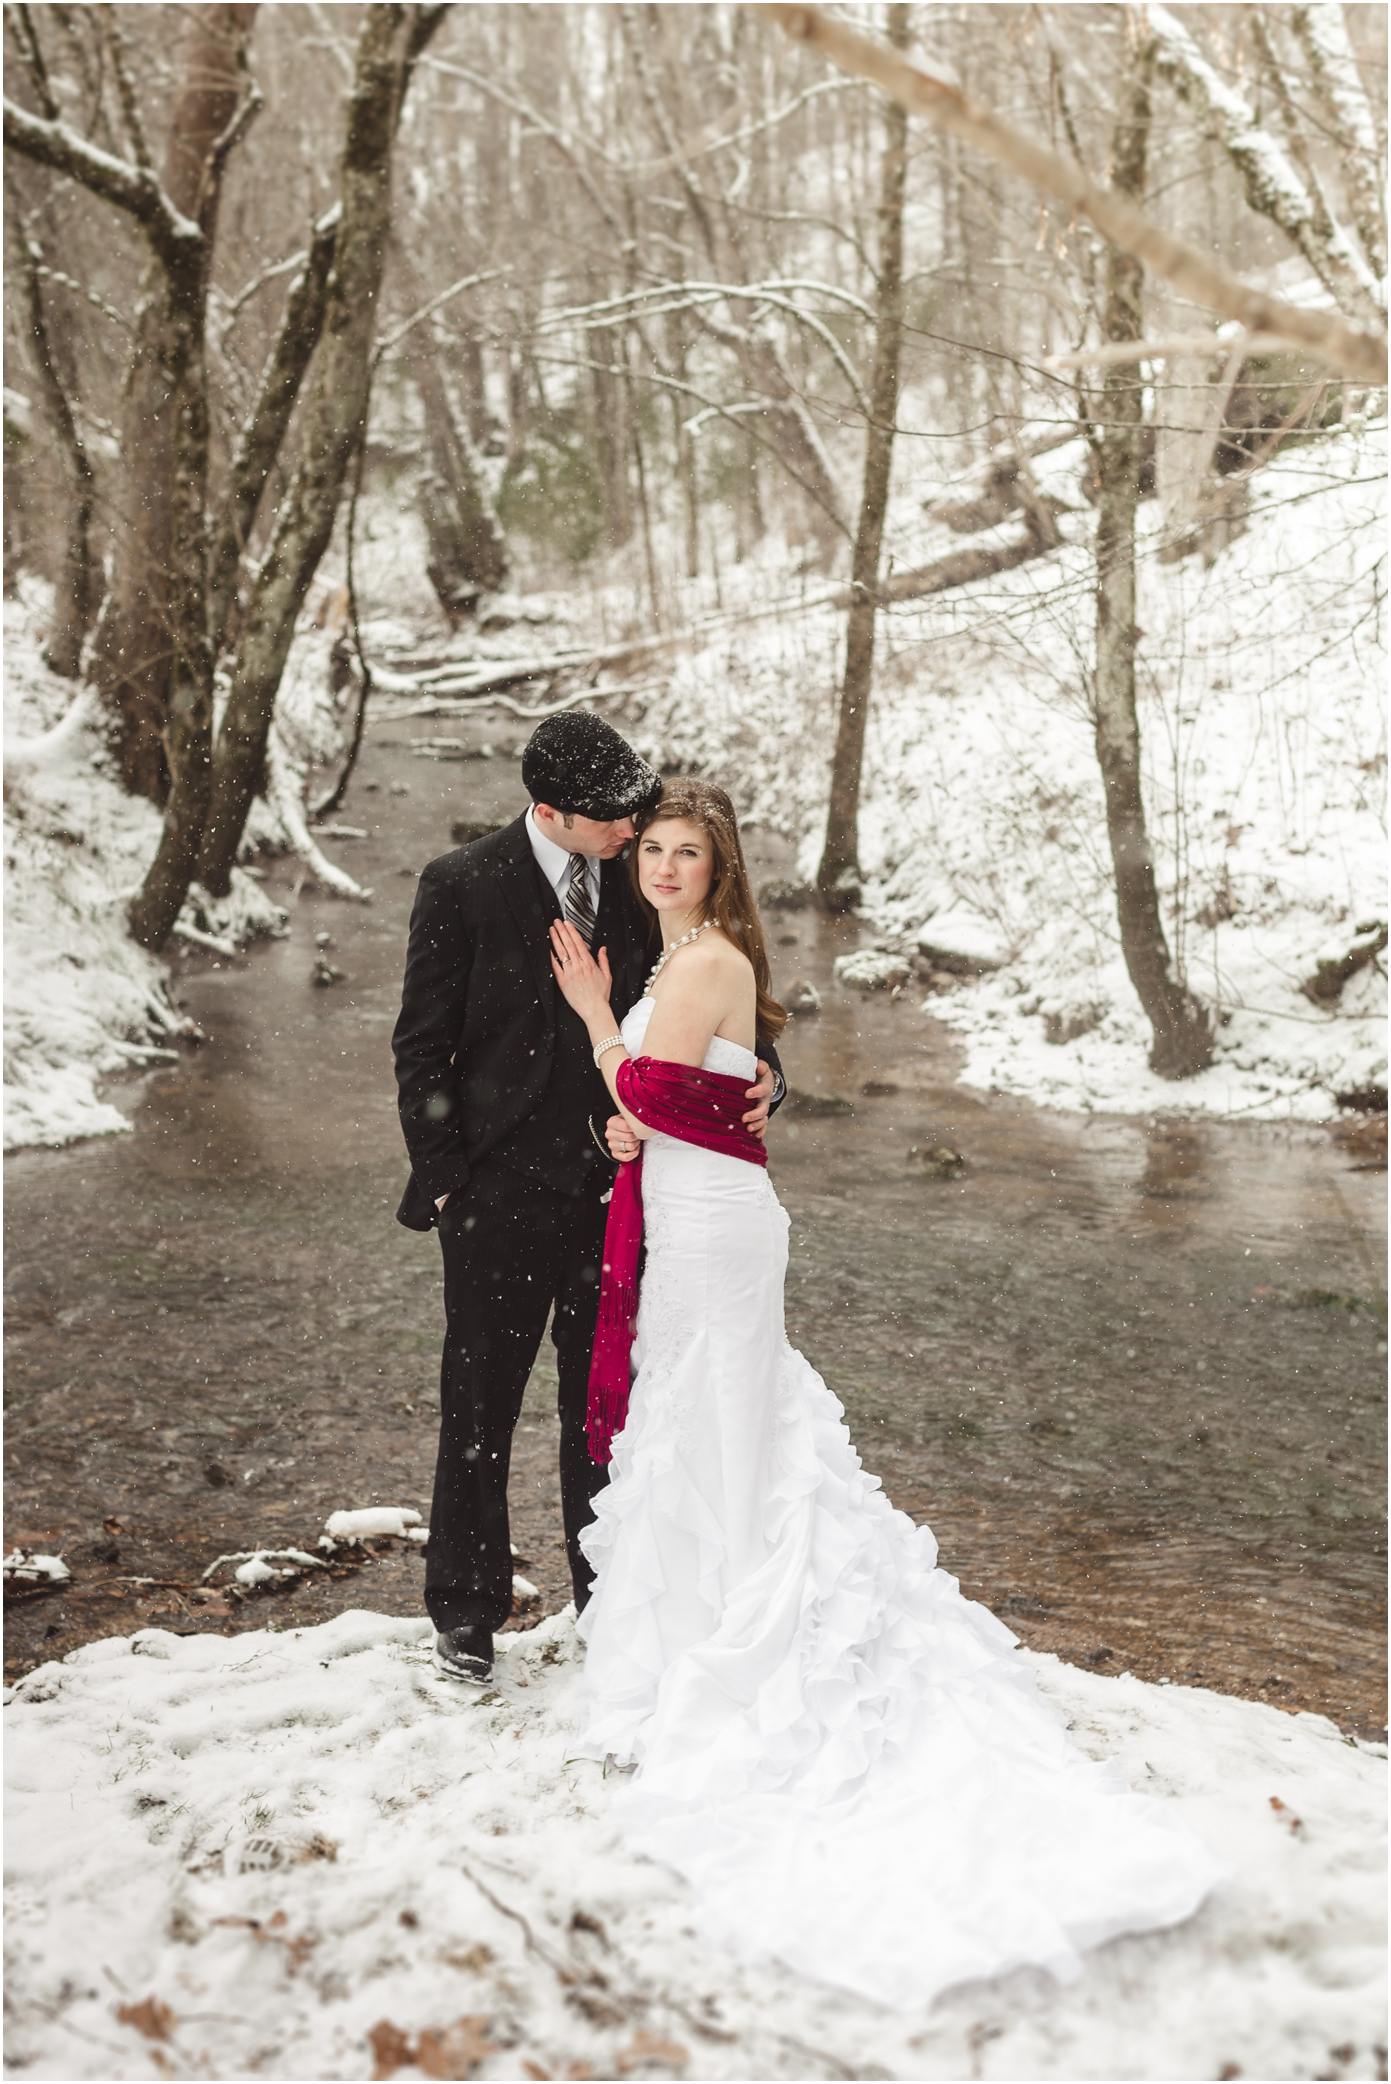 Winter Wedding Photos With Snow In Knoxville Tn By Jophoto